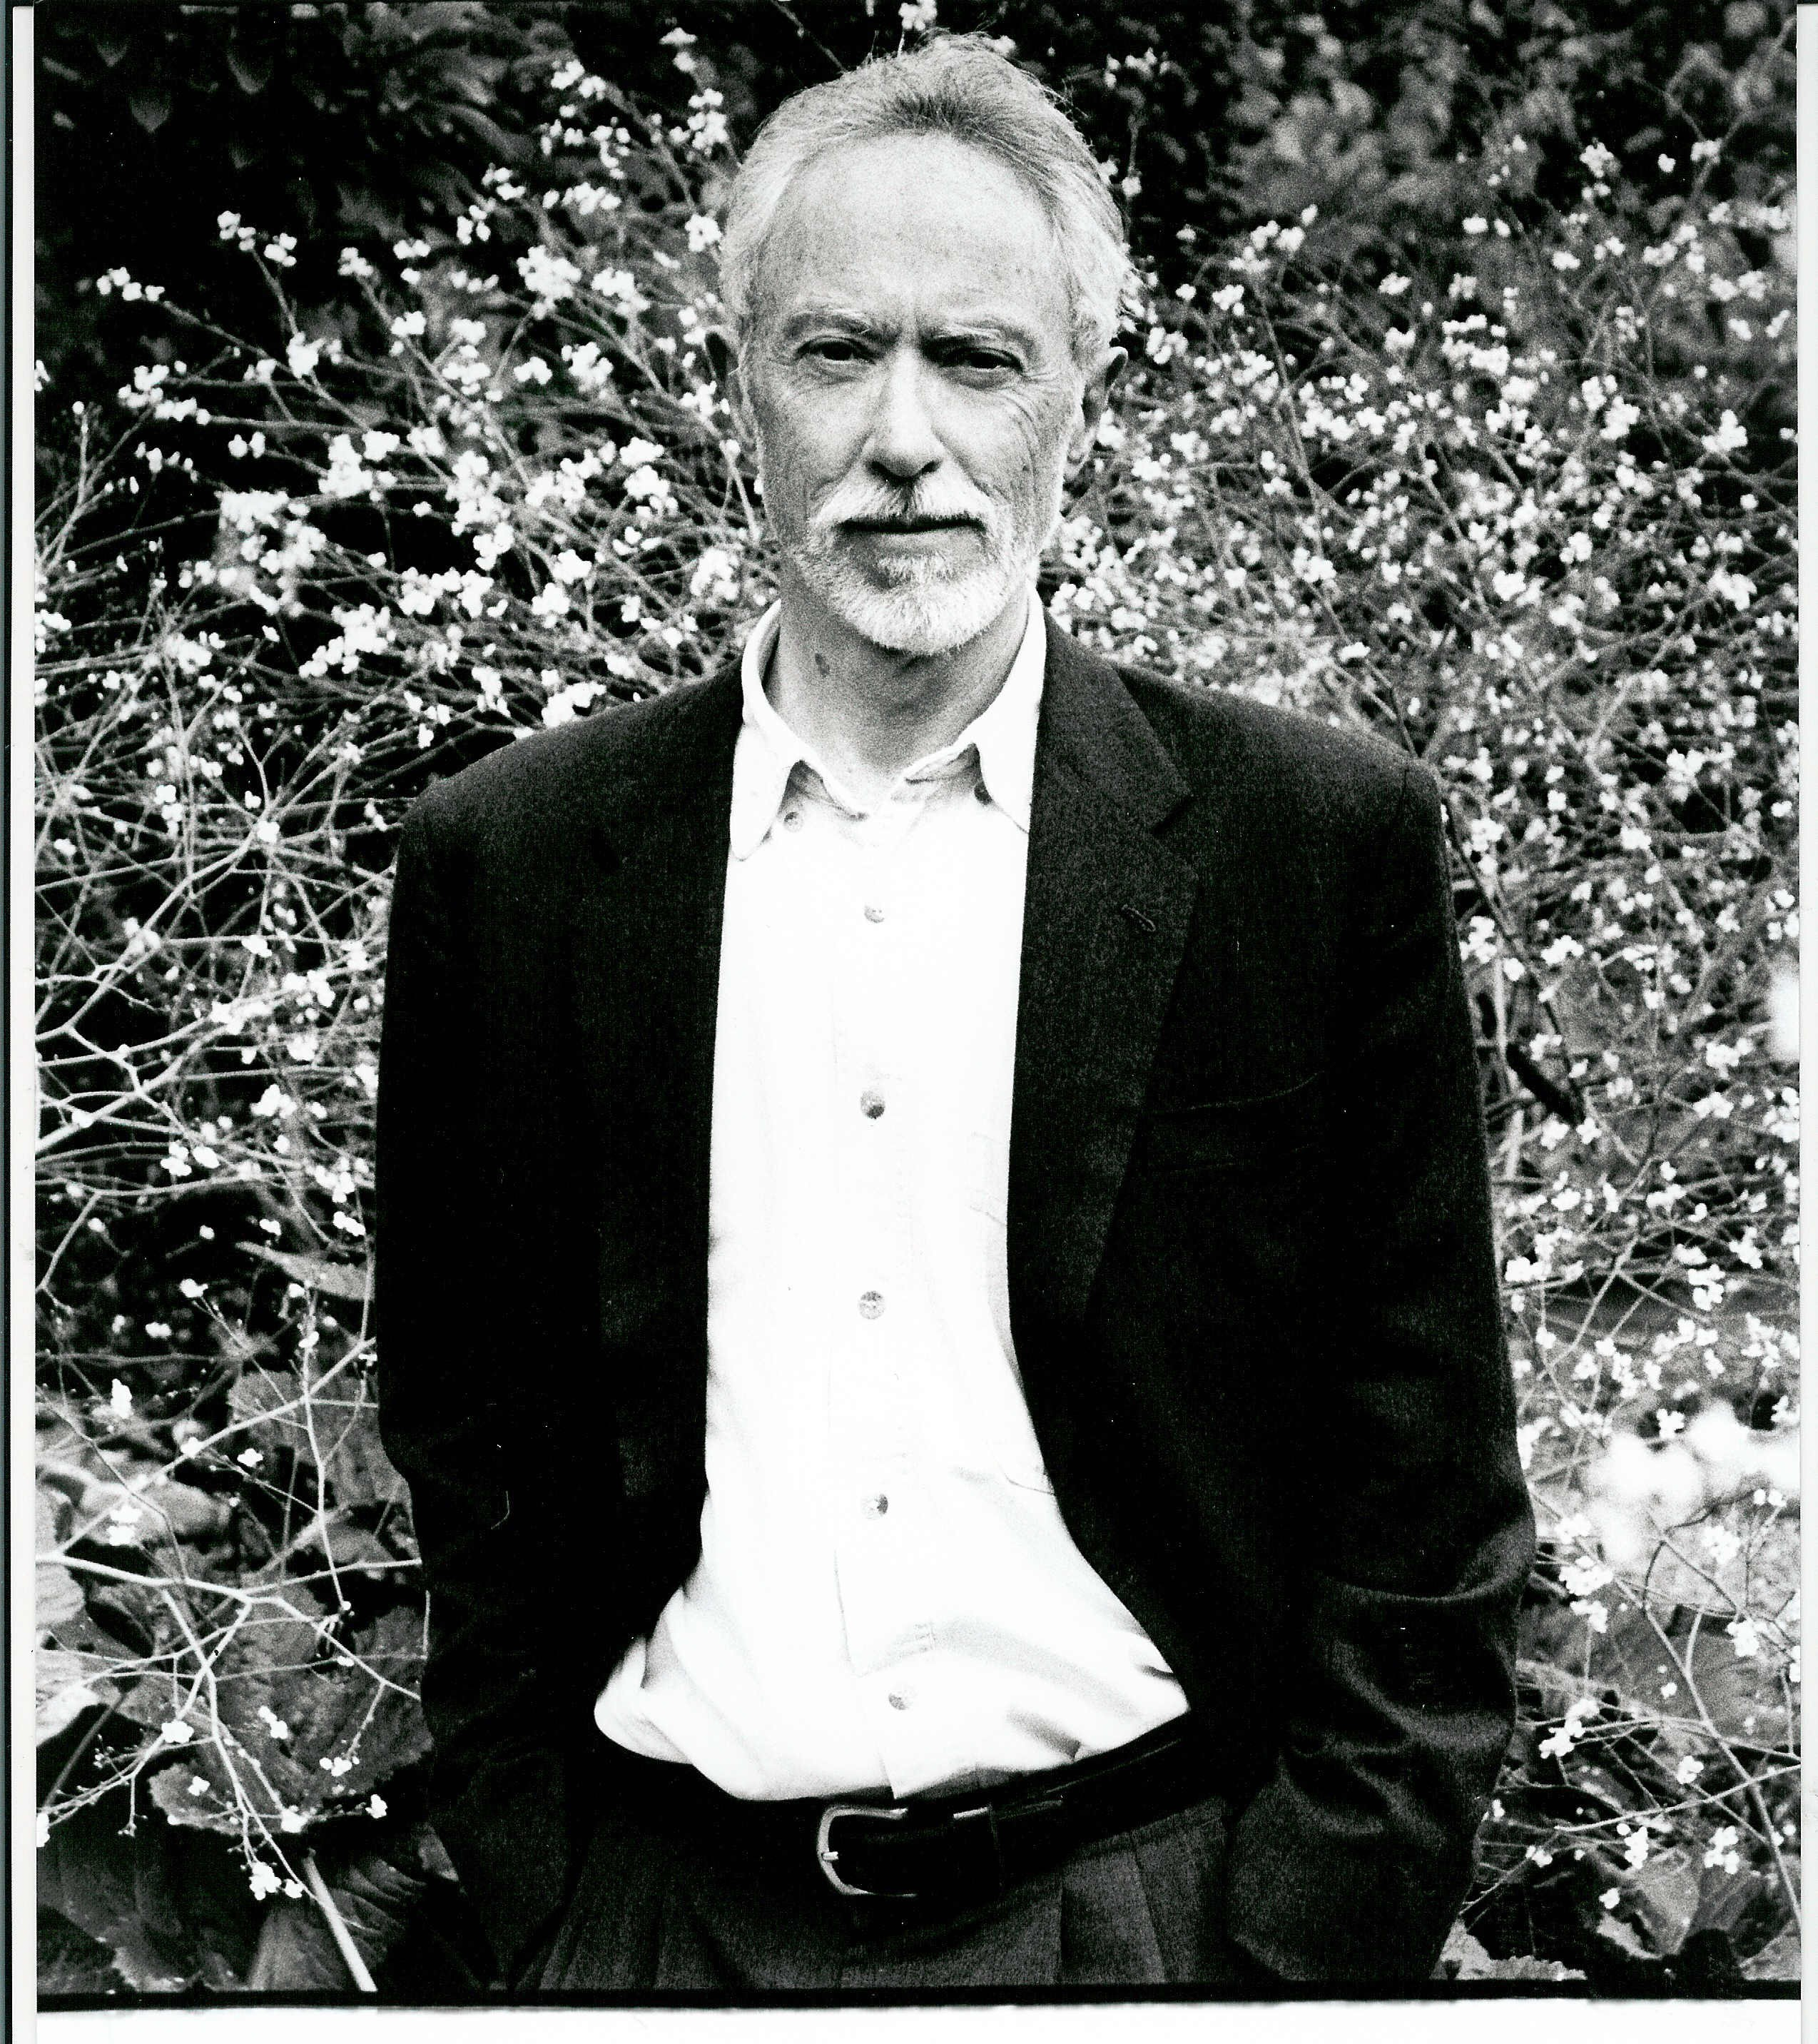 waiting for the barbarians by j m coetzee essay Waiting for the barbarians by jm coetzee essay 1363 words | 6 pages in jm coetzee's novel waiting for the barbarians, the magistrate comes to discover the humanity of the barbarian through his interactions with the blind girl, which eventually leads him to learn about the nature of his own humanity.